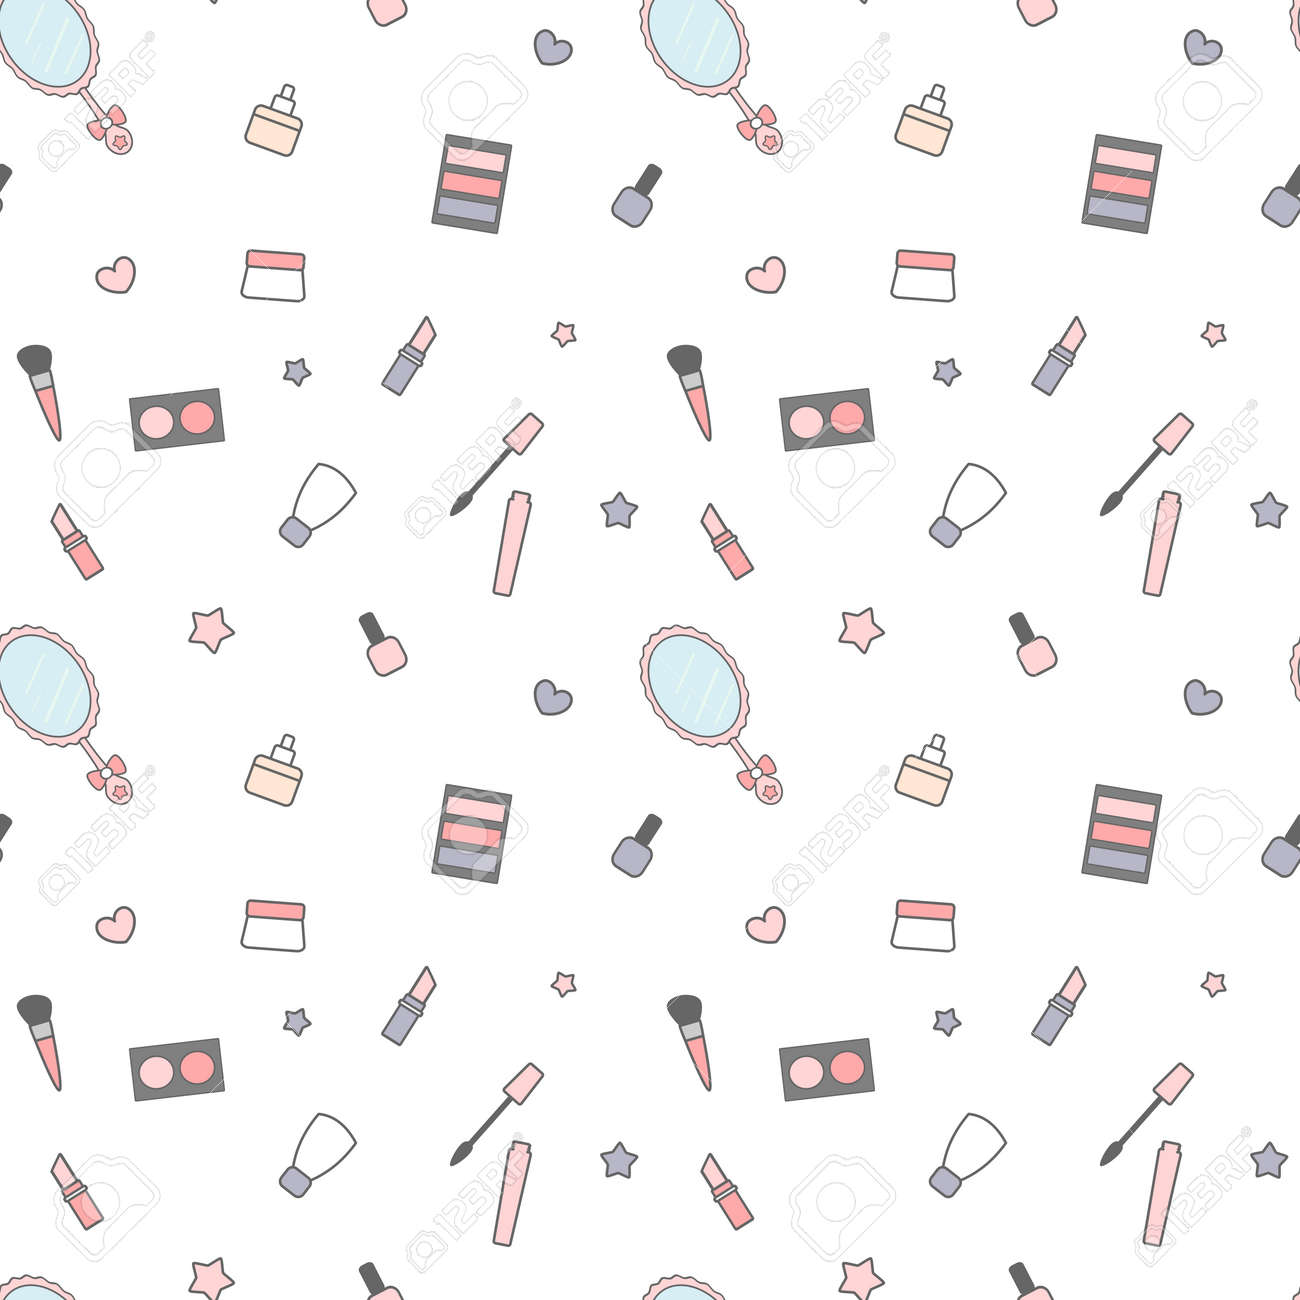 Beautiful Cartoon Makeup Wallpaper - 77083161-cute-cartoon-beauty-vector-background-pattern-illustration-seamless-mix-with-cream-make-up-mirror-an  You Should Have_365965.jpg